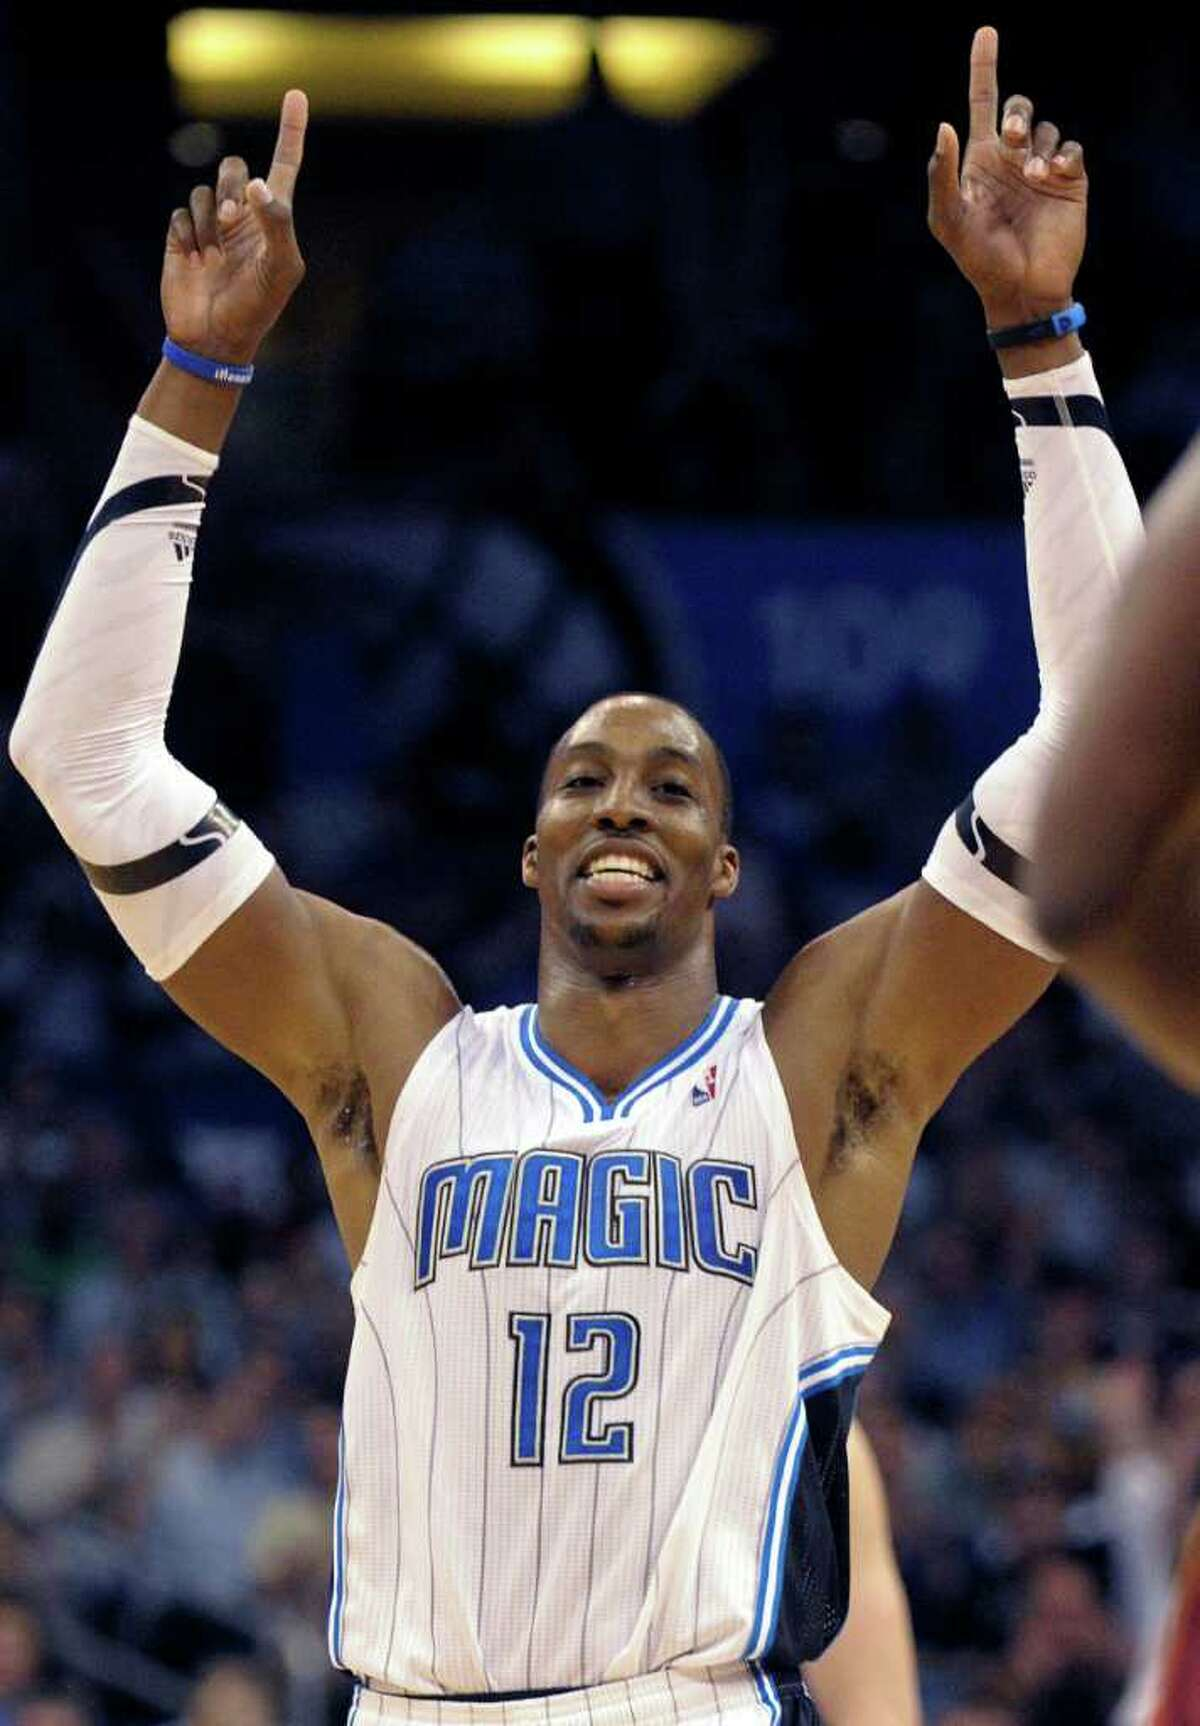 Orlando Magic center Dwight Howard celebrates after making a foul shot in overtime of an NBA basketball game against the Miami Heat in Orlando, Fla., Tuesday, March 13, 2012. The Magic won 104-98.